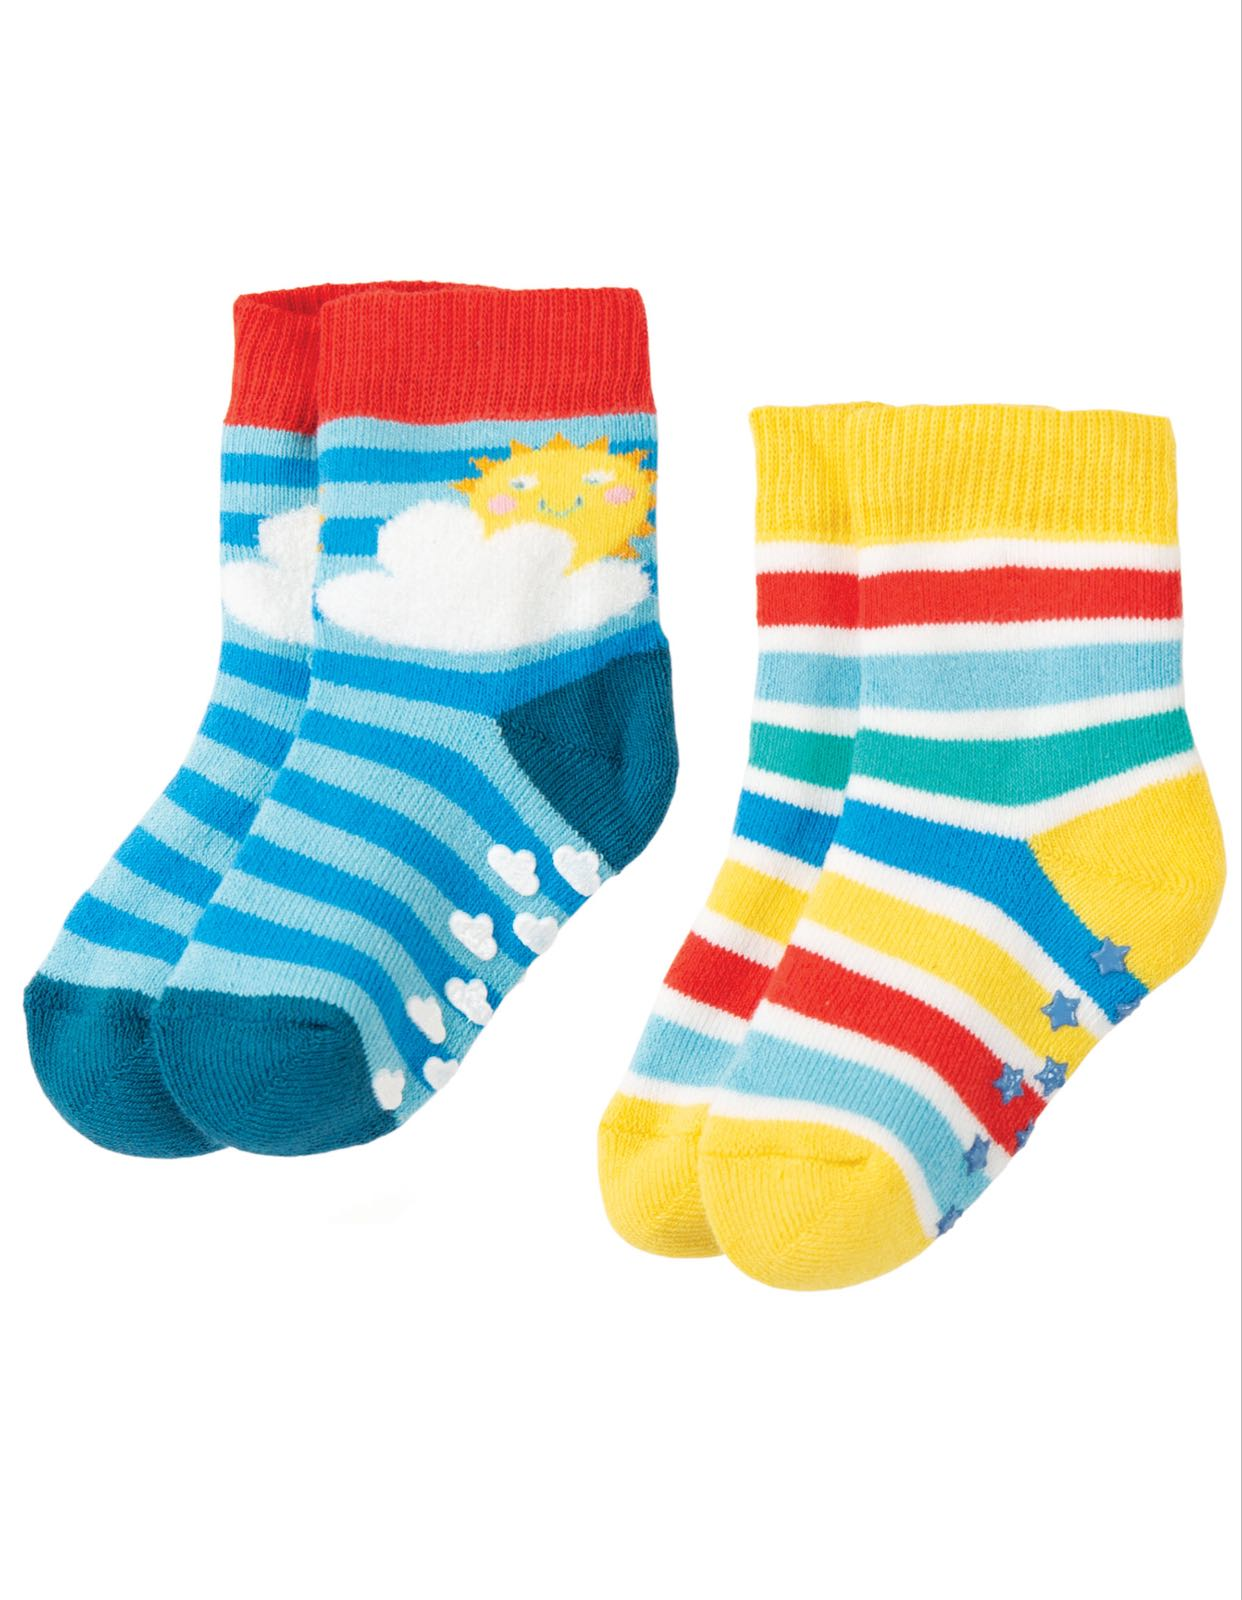 Frugi Grippy Socks 2 Pack, Rainbow